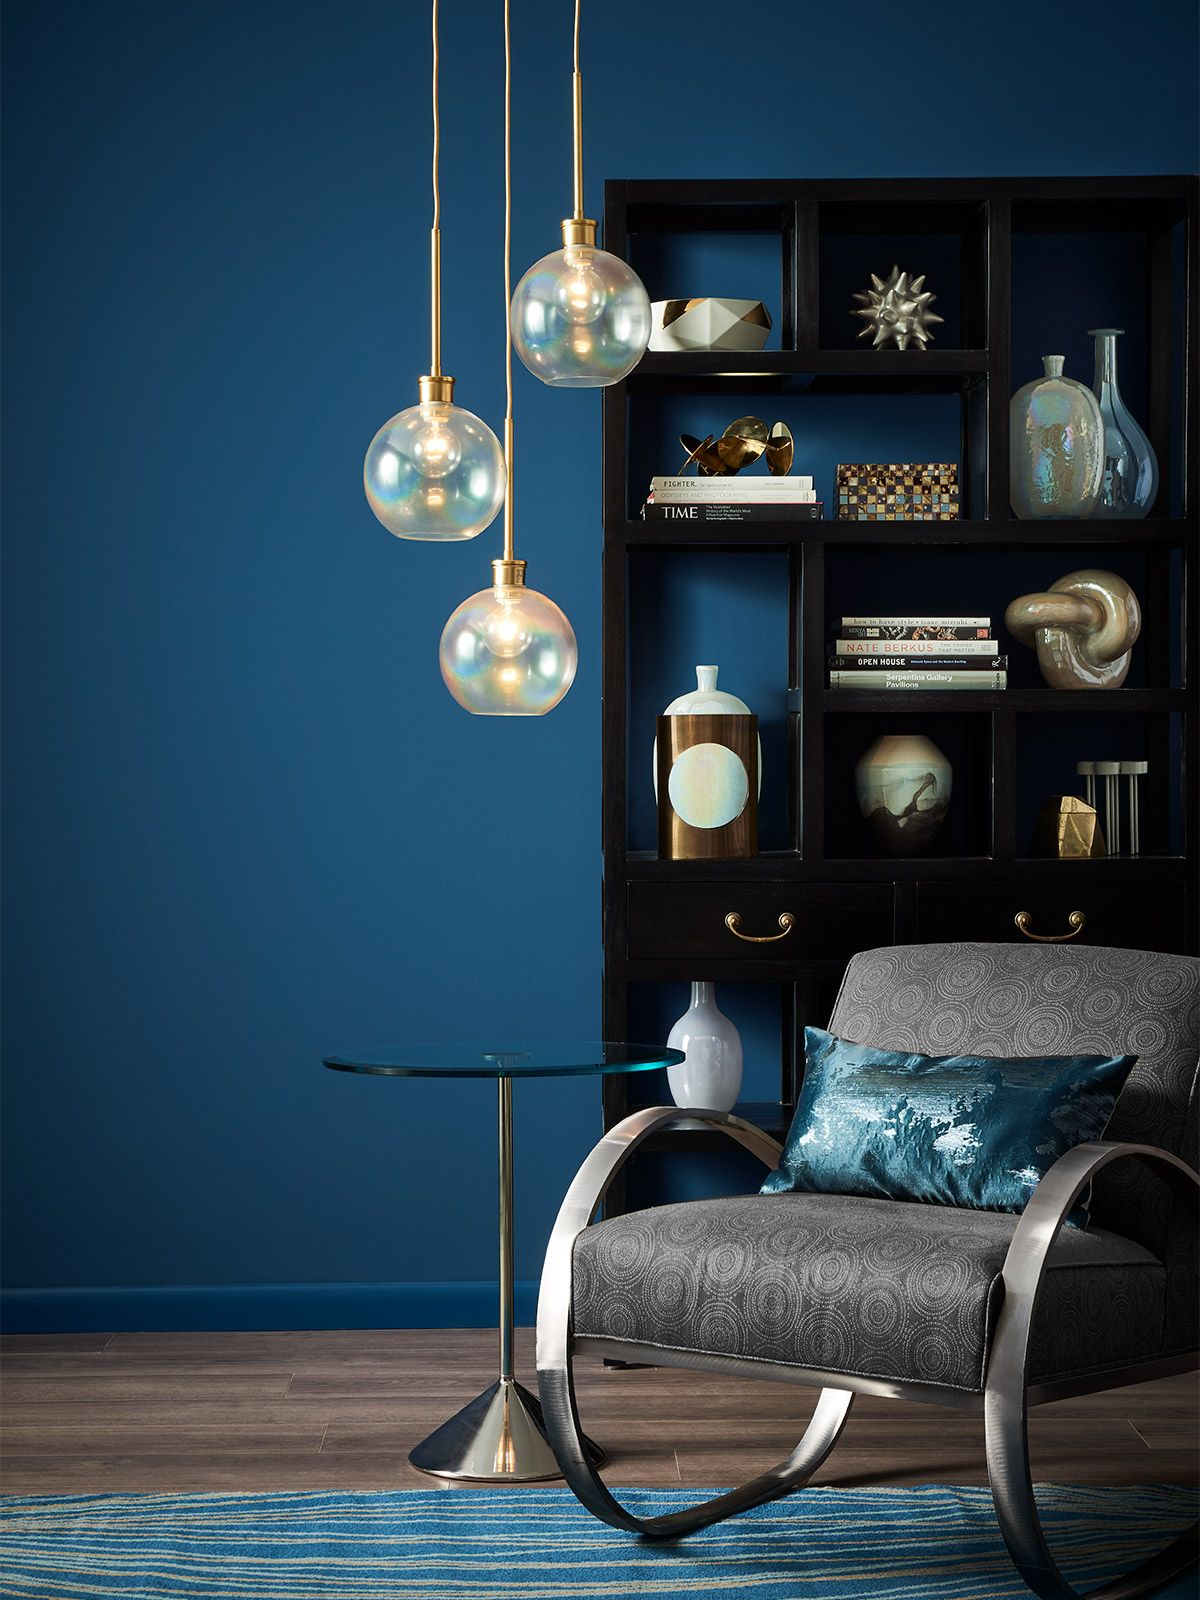 Corner Of A Room With Silver Grey Chair And Dark Blue Walls Blue Painted Walls Dark Blue Walls Dark Blue Rooms Silver blue paint living room